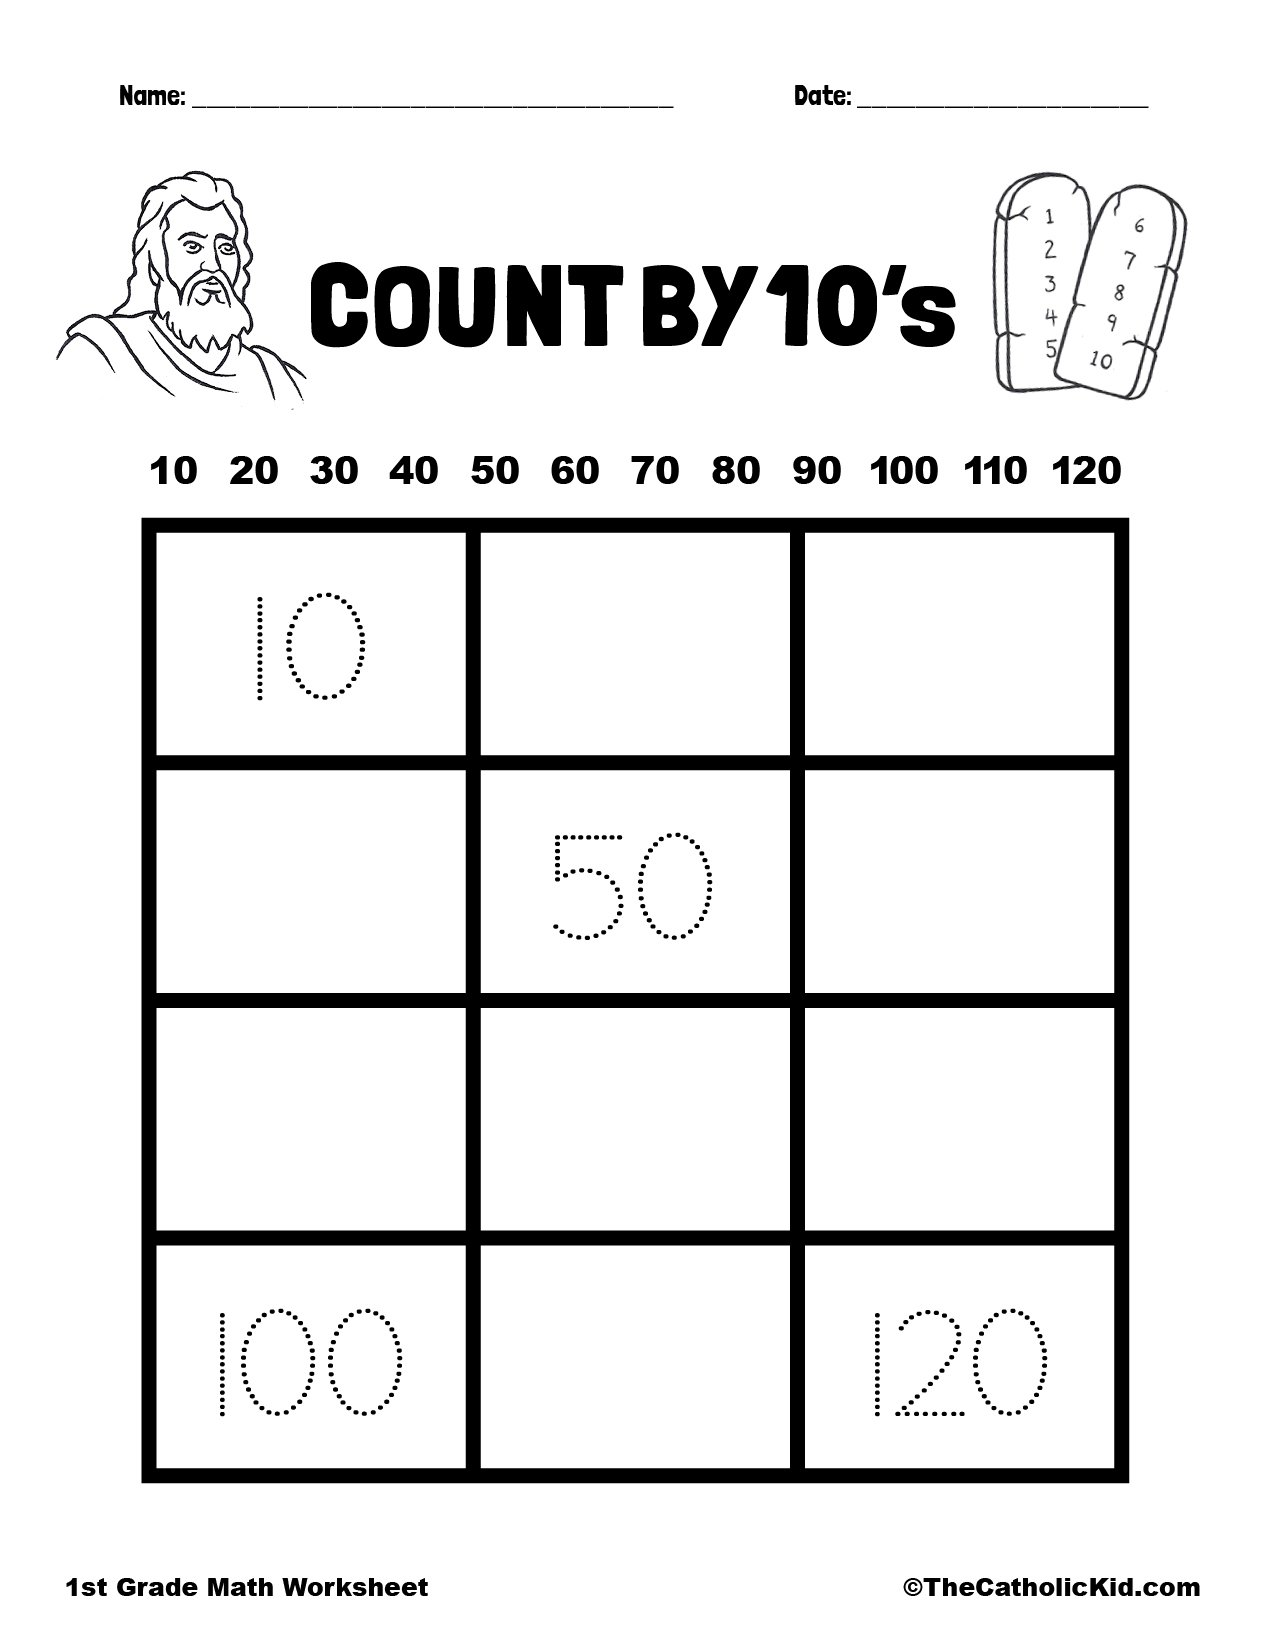 Count by 10's - 1st Grade Math Catholic Worksheet